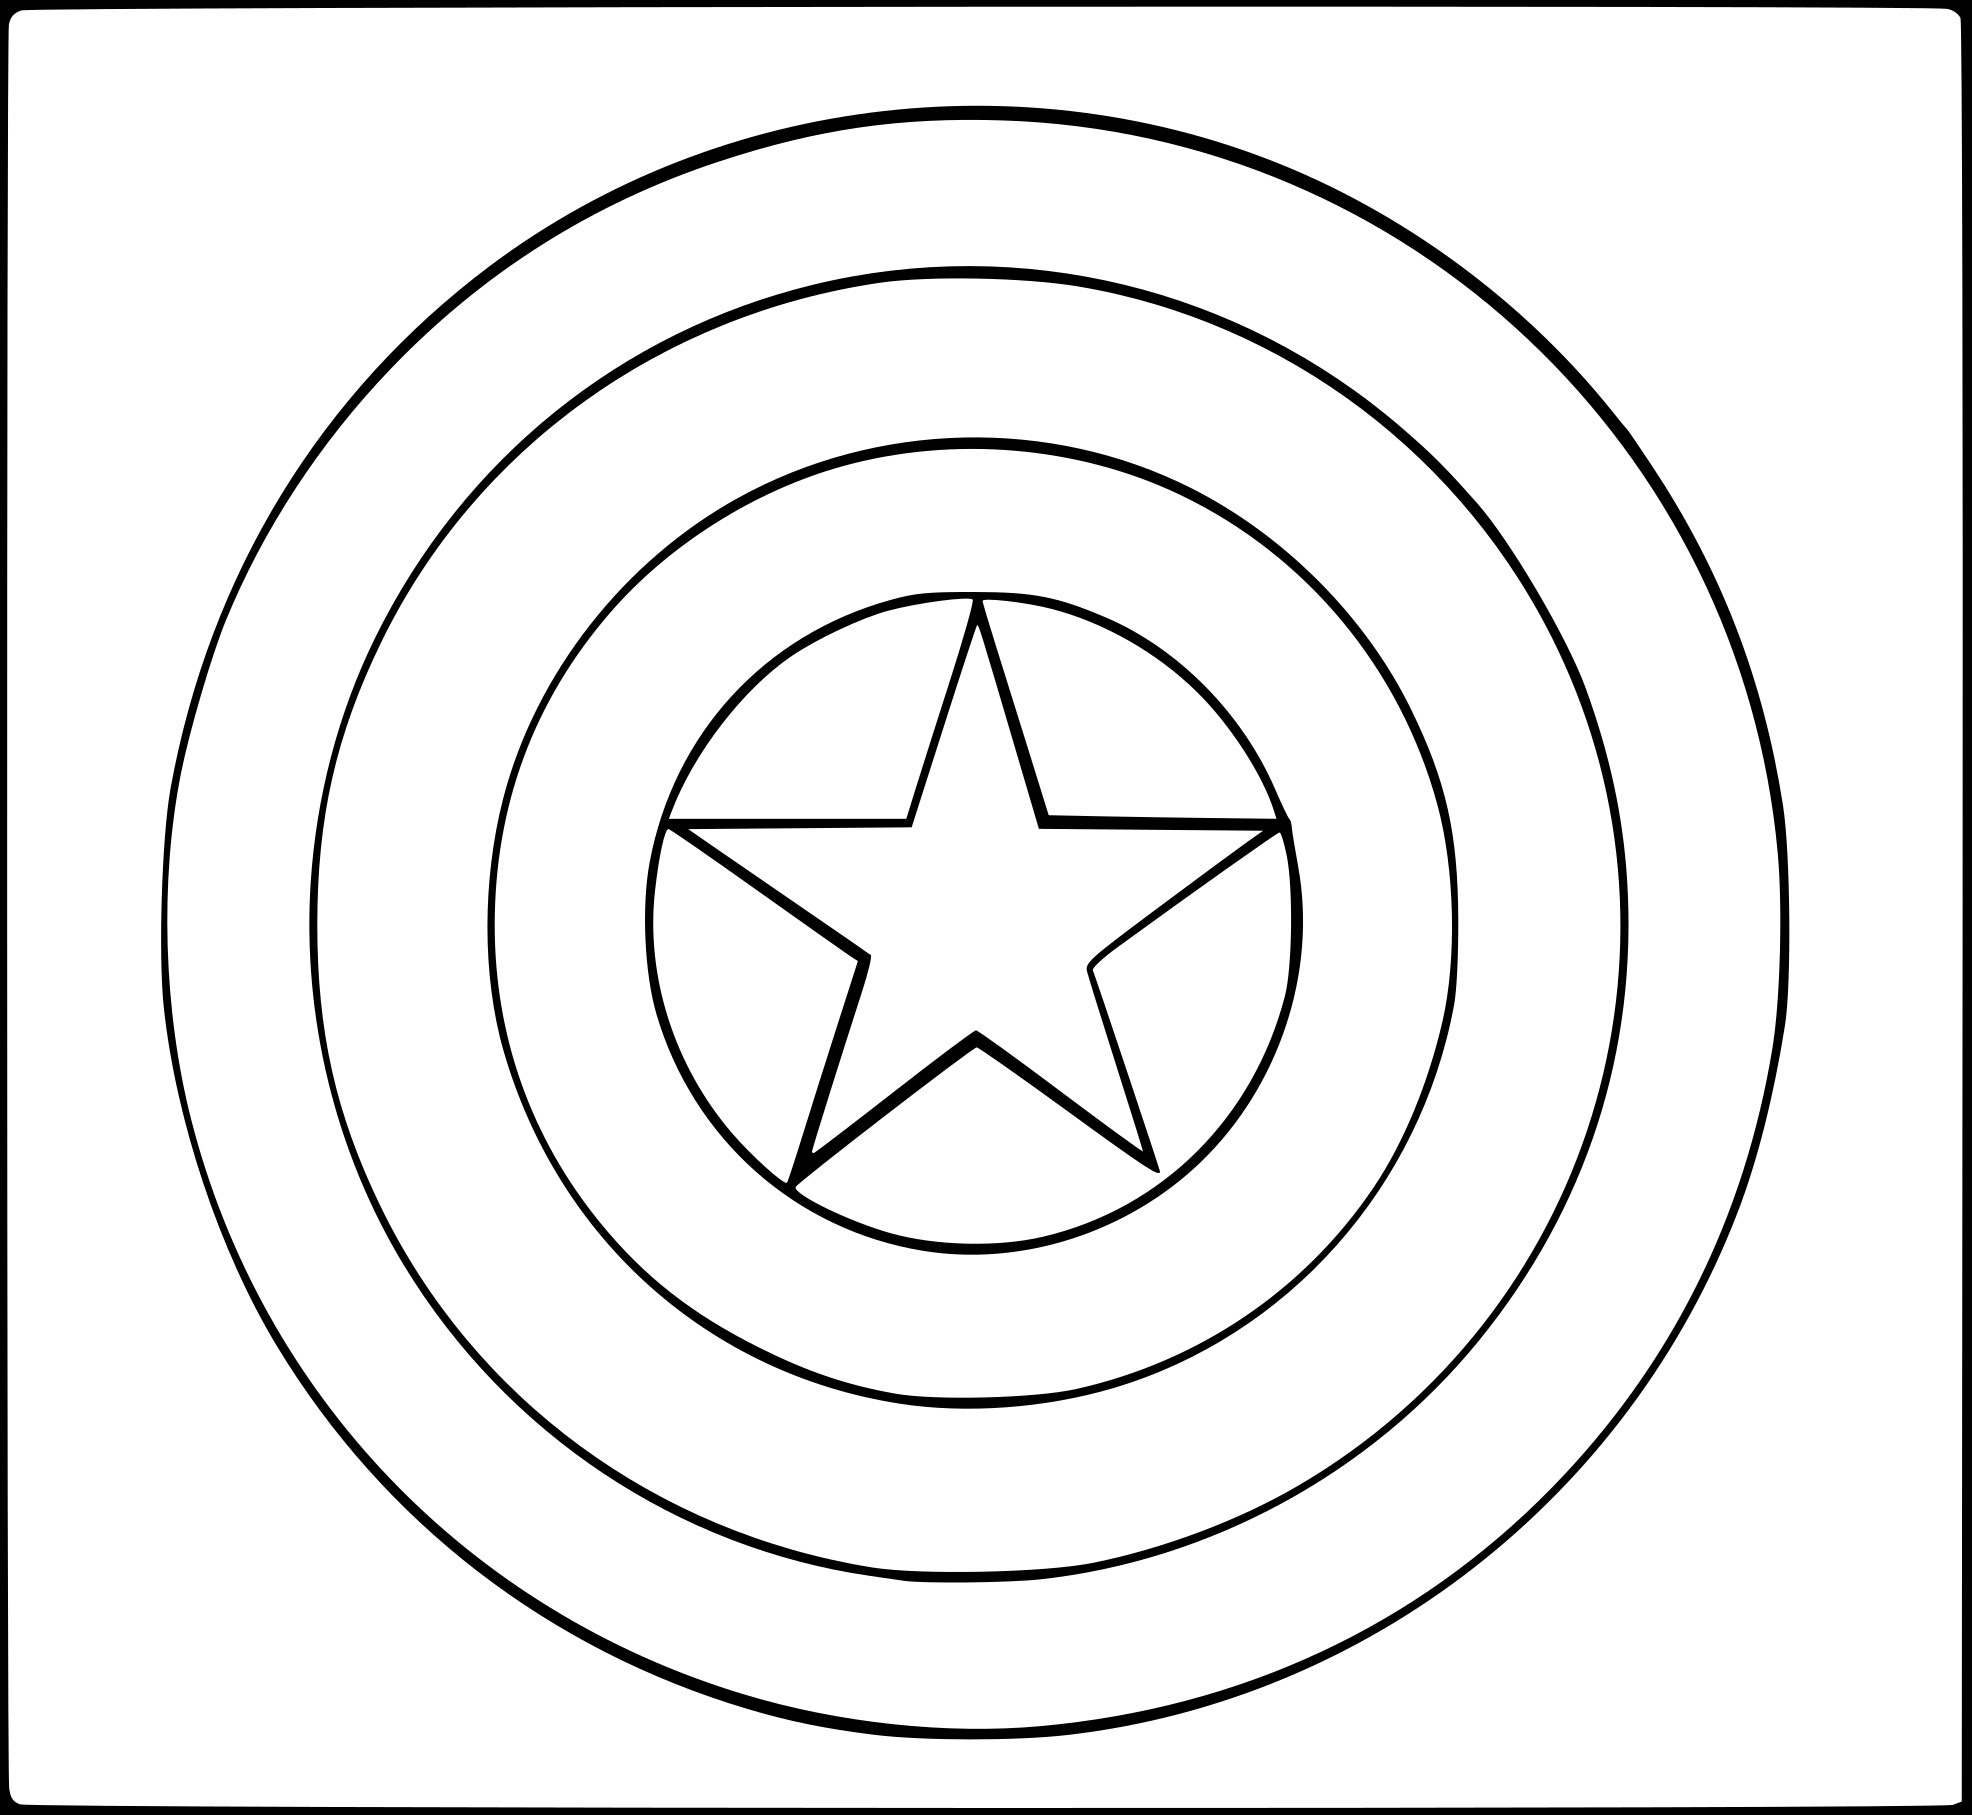 Captain America Logo Coloring Sheets Pictures to Pin on